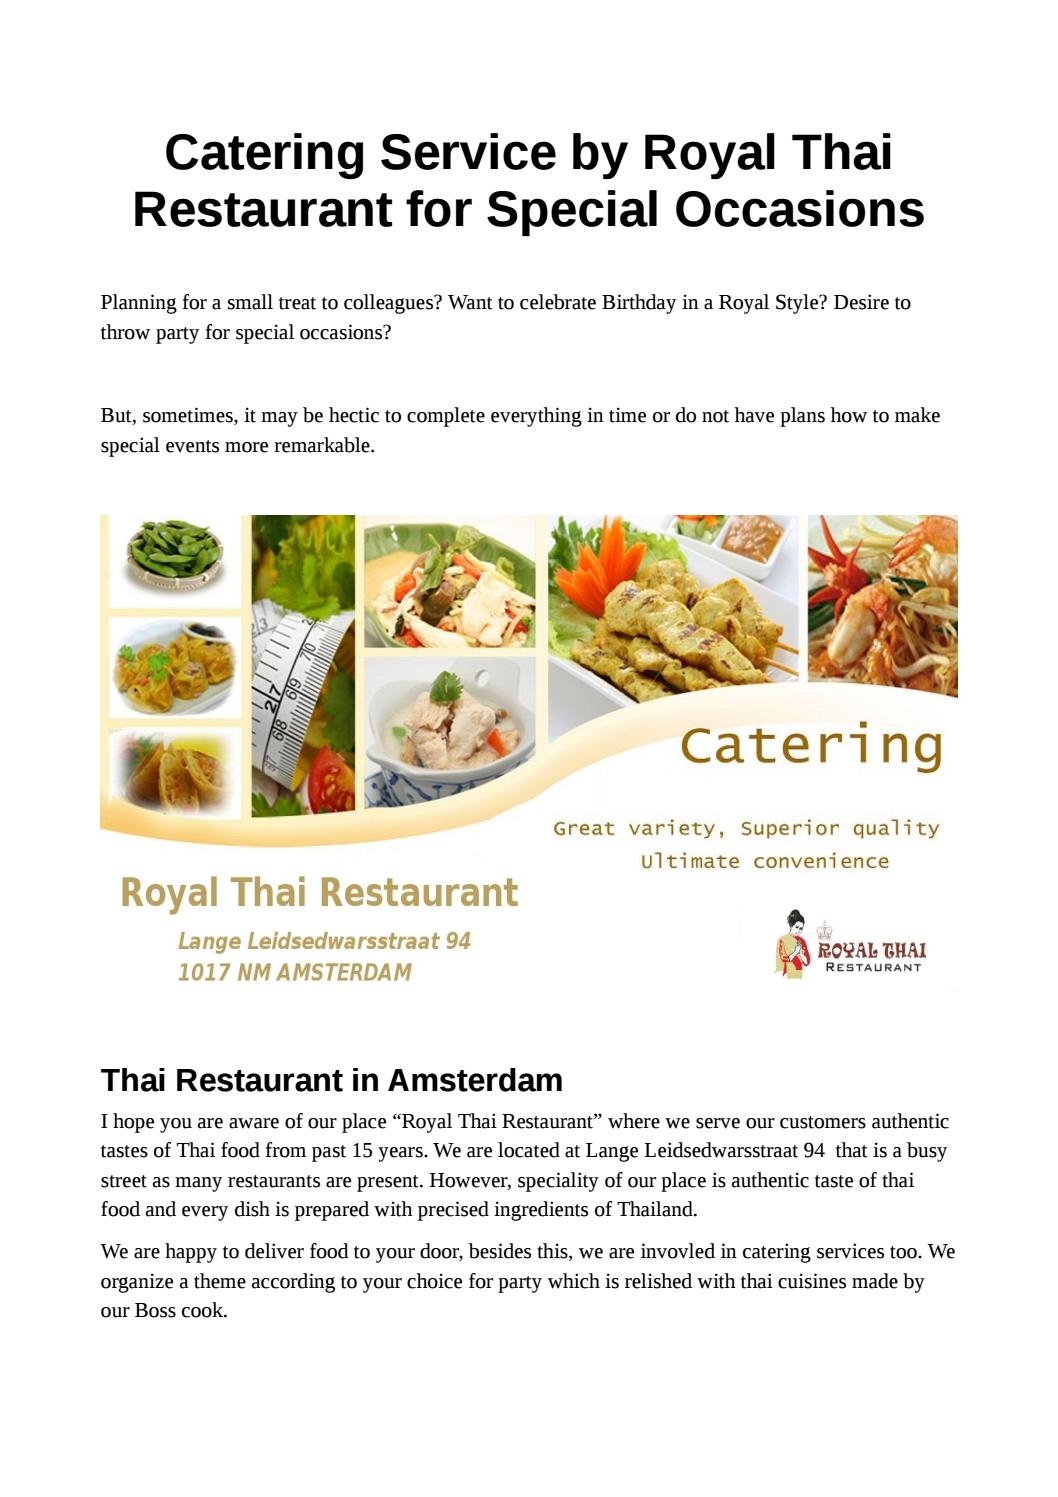 Catering Service By Royal Thai Restaurant For Special Occasions